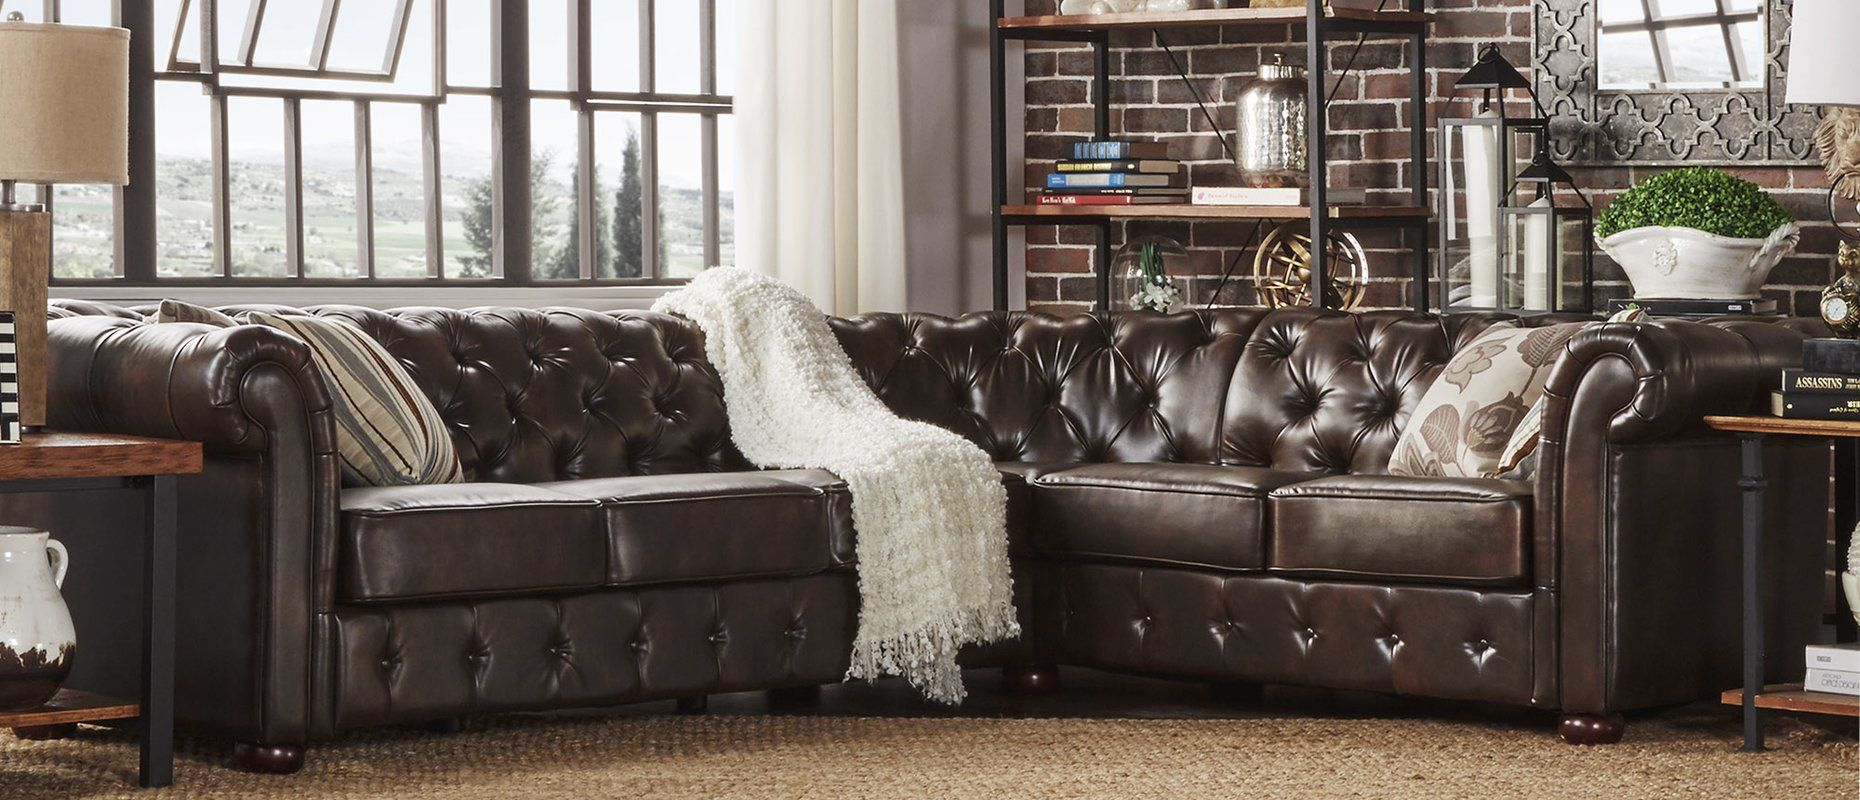 Brilliant Gowans Sectional Collection Reviews Birch Lane Couches Gamerscity Chair Design For Home Gamerscityorg